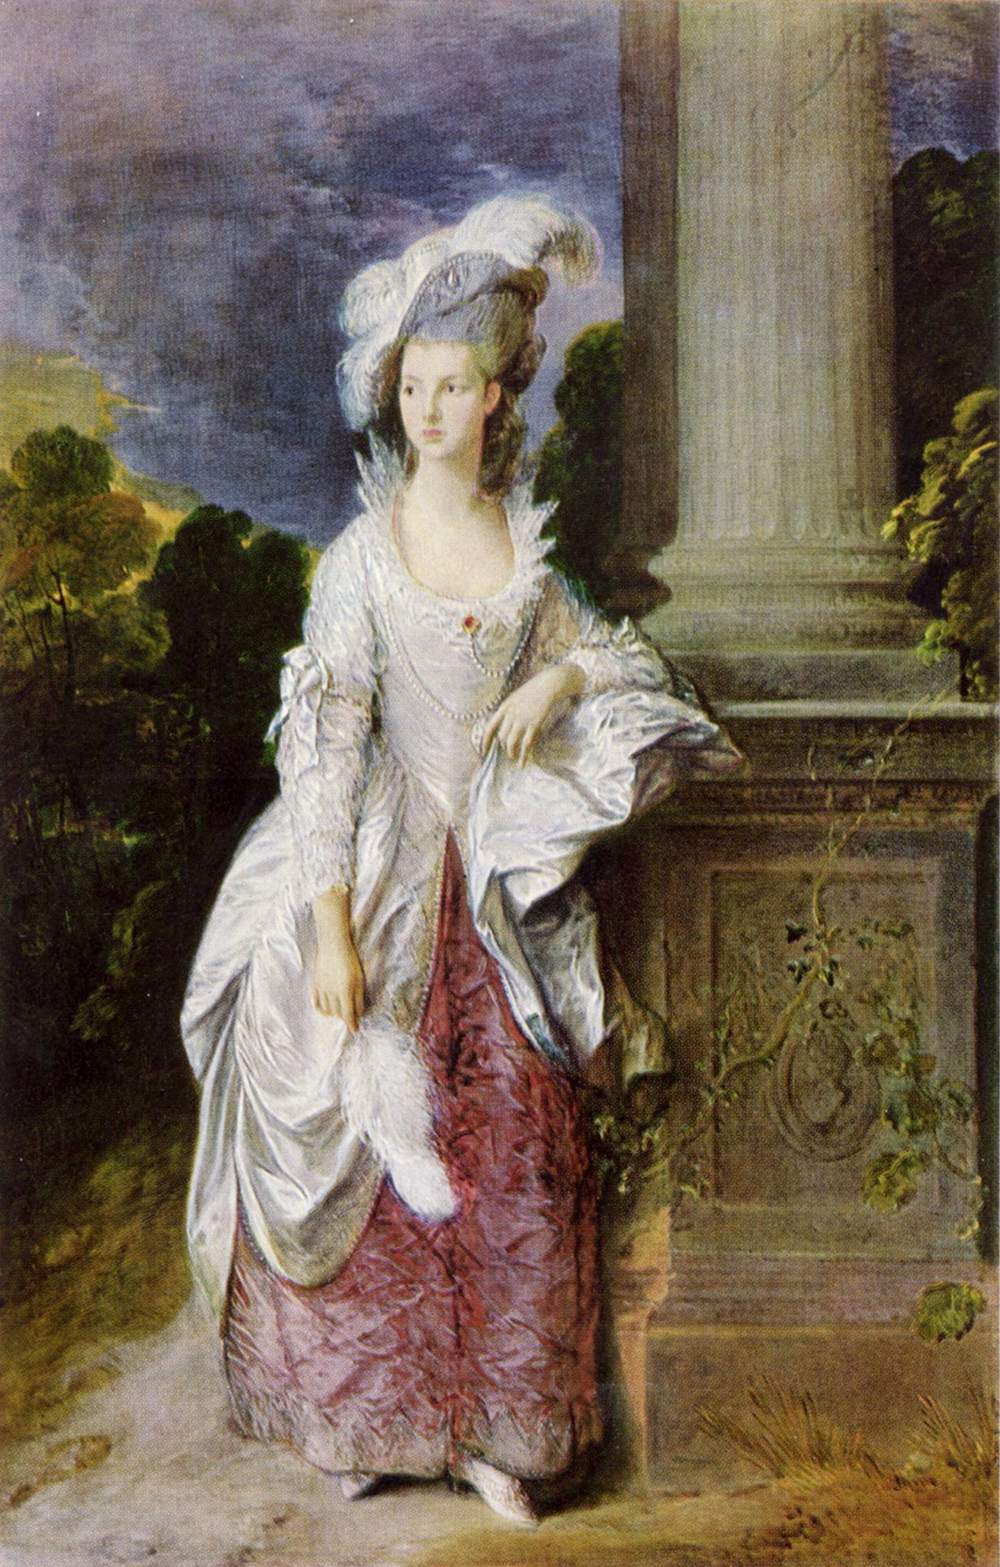 http://upload.wikimedia.org/wikipedia/commons/d/d3/Thomas_Gainsborough_016.jpg